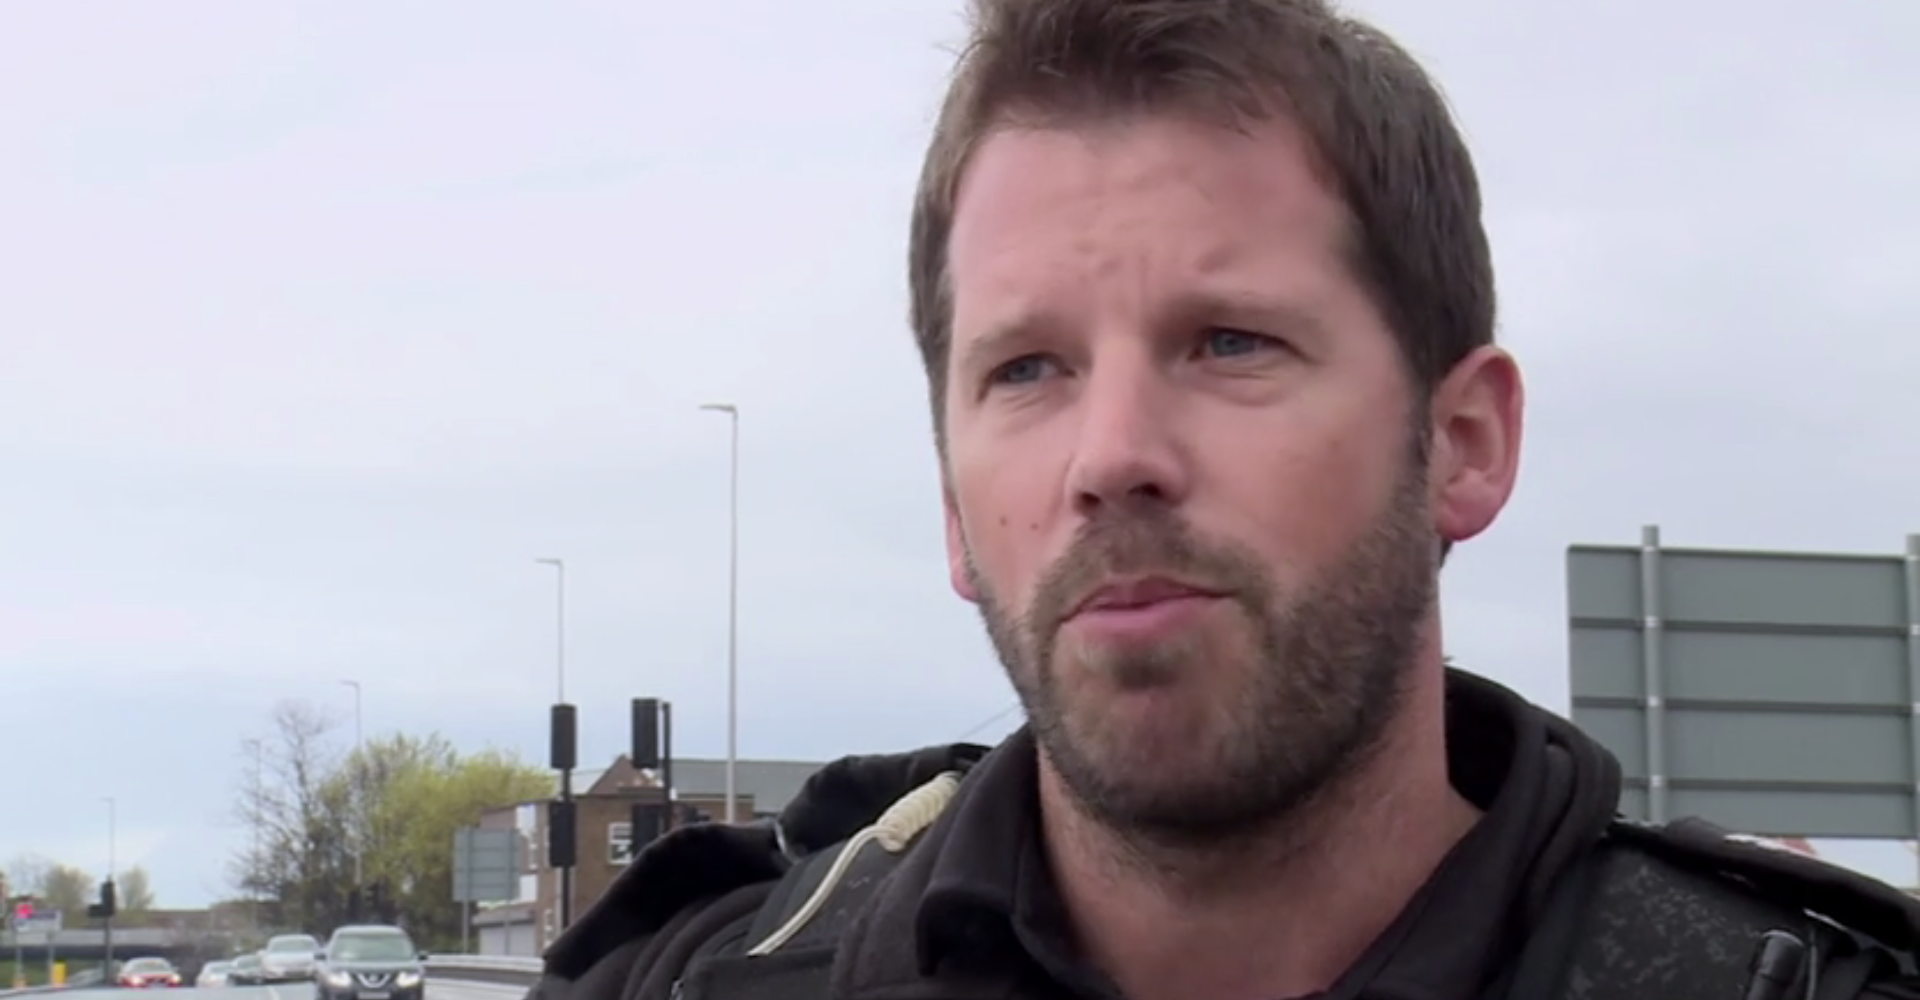 Police Interceptors' Kev Drives Them Wild As One Of UK's Hottest Professional Drivers